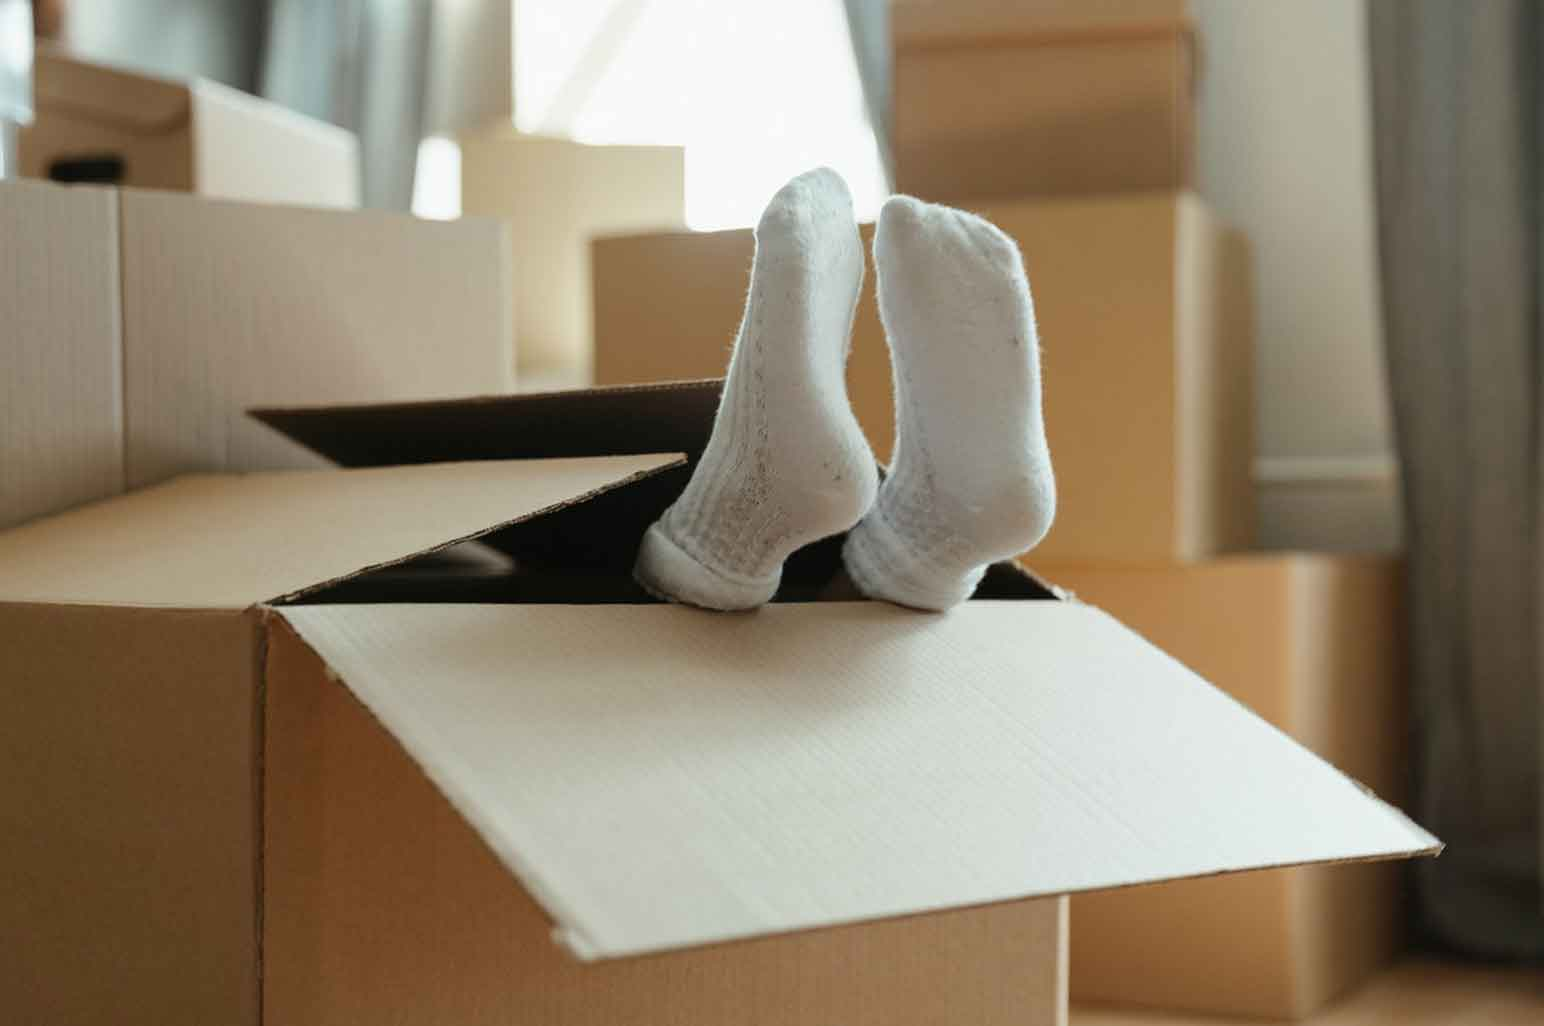 How To Make Moving Home A Breeze